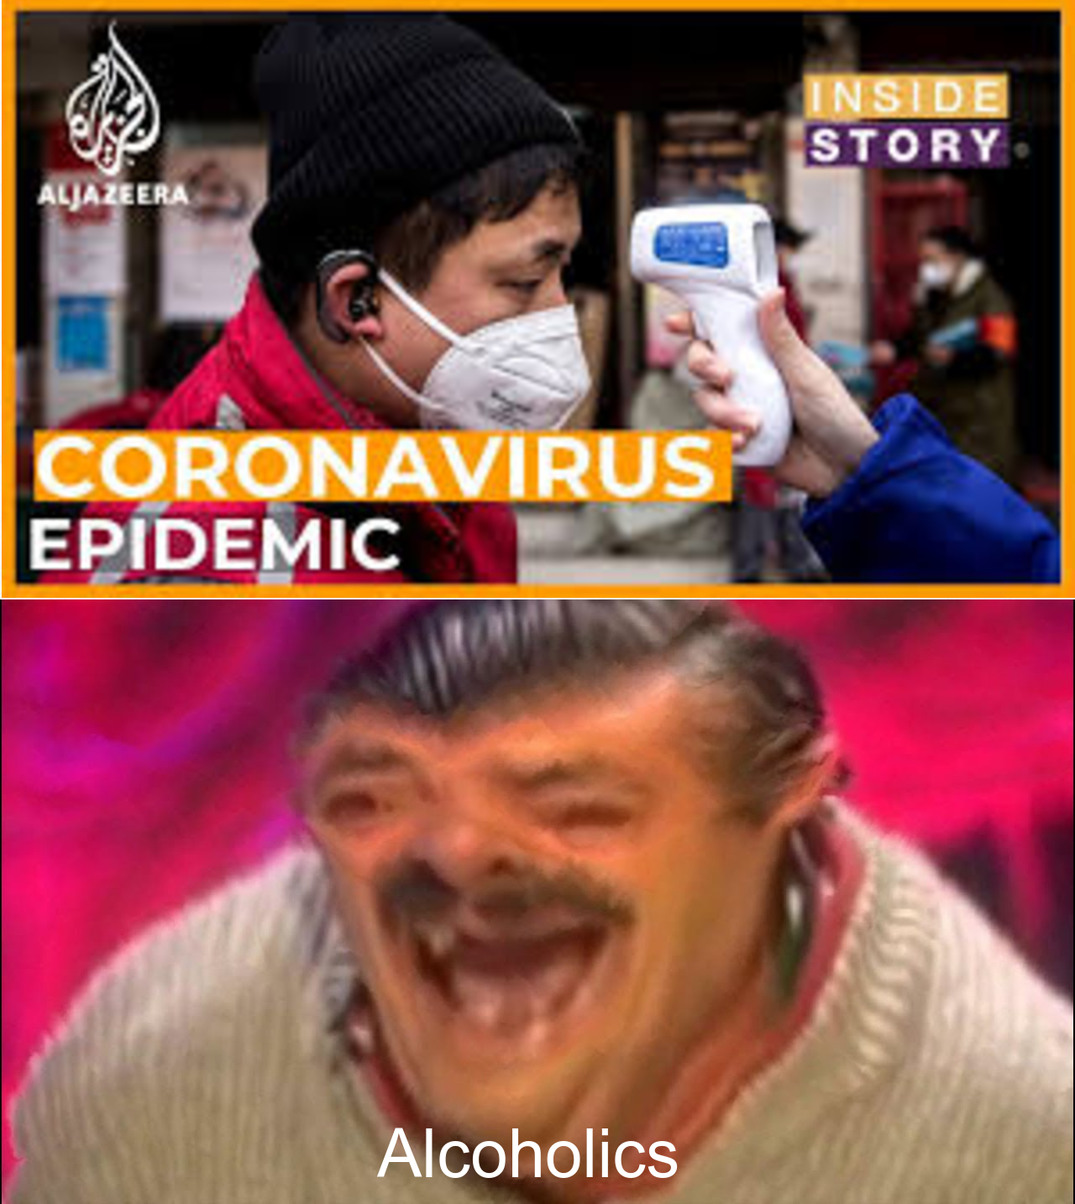 When you realize corona can kill coronavirus - meme